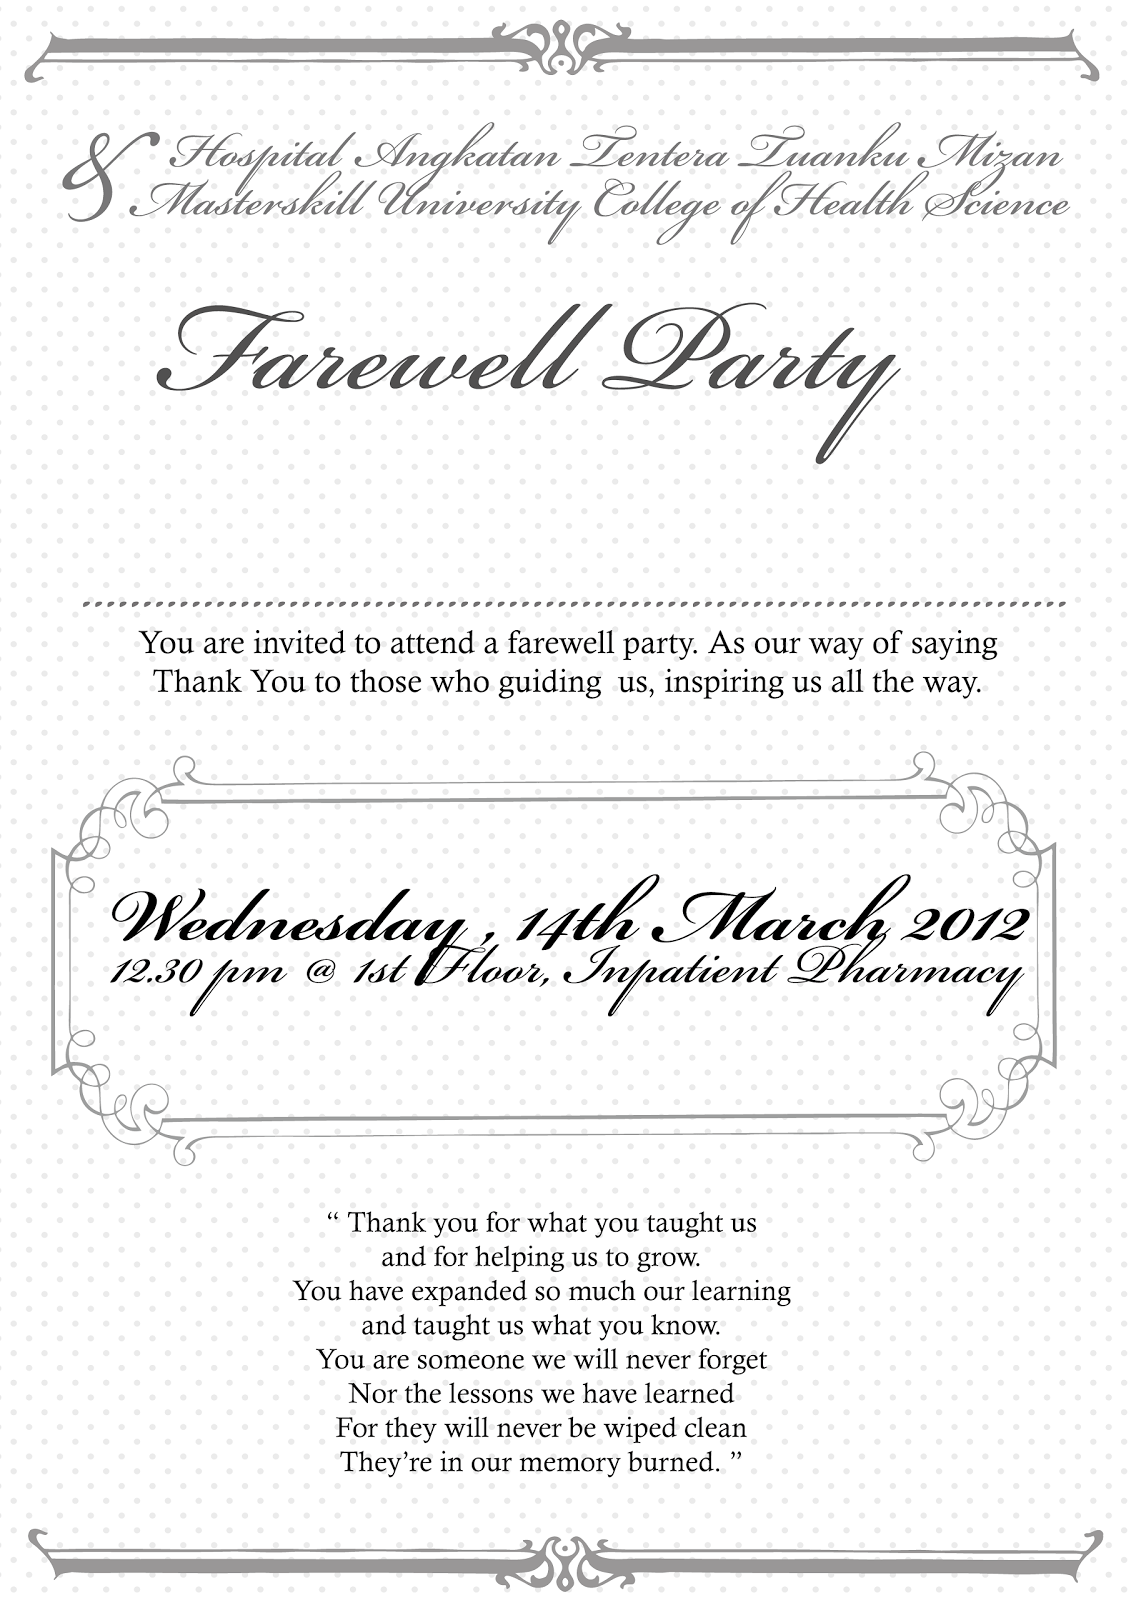 8 Impactful Invitation Card For Farewell Party In College